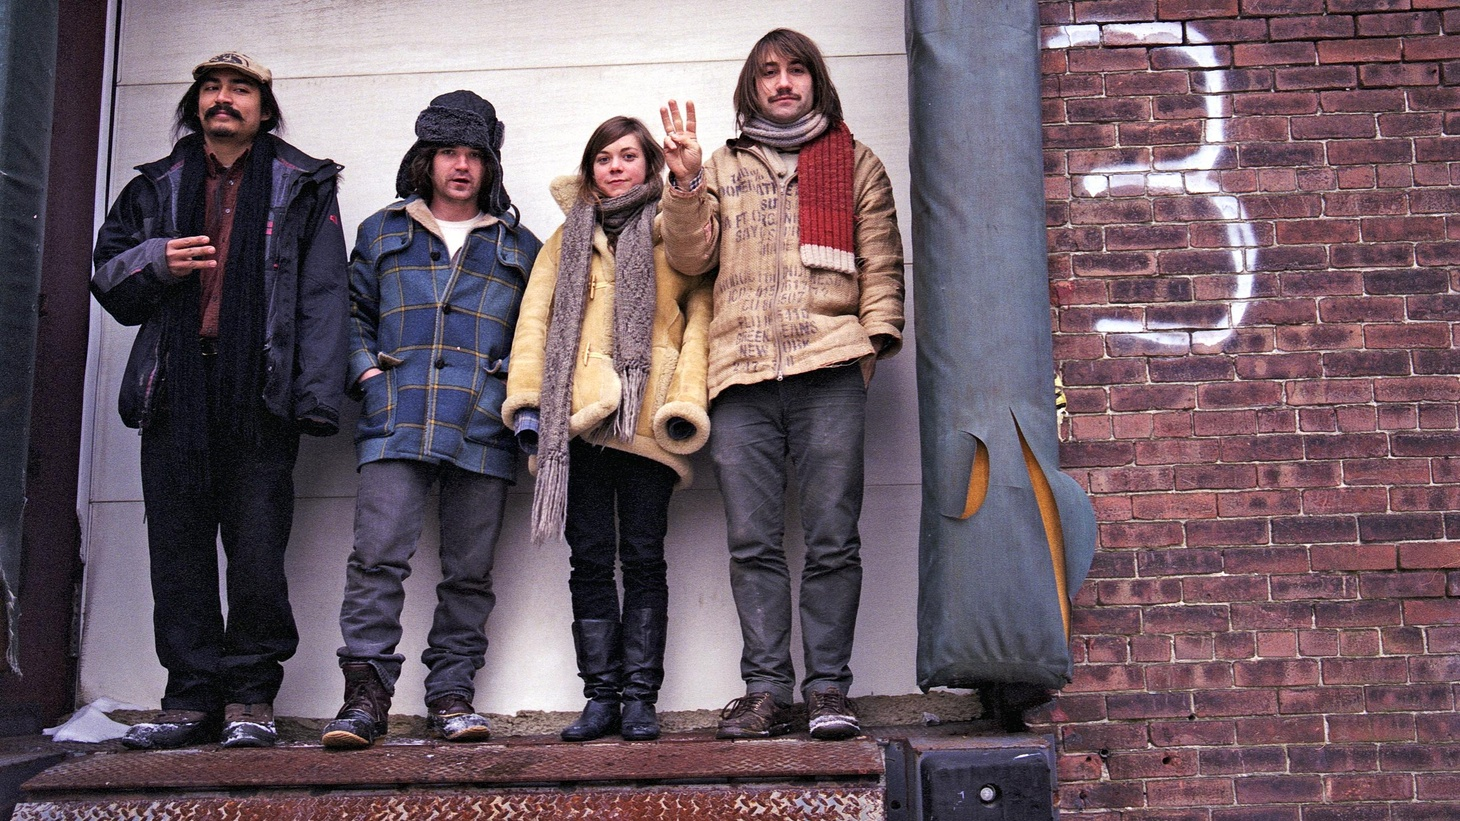 Rhode Island-based folk-rockers The Low Anthem have made some large strides in just a few short years.  A mere two and a half years ago they self-released their sophomore album, Oh My God, Charlie Darwin, which made quite a splash, despite its relative scarcity.